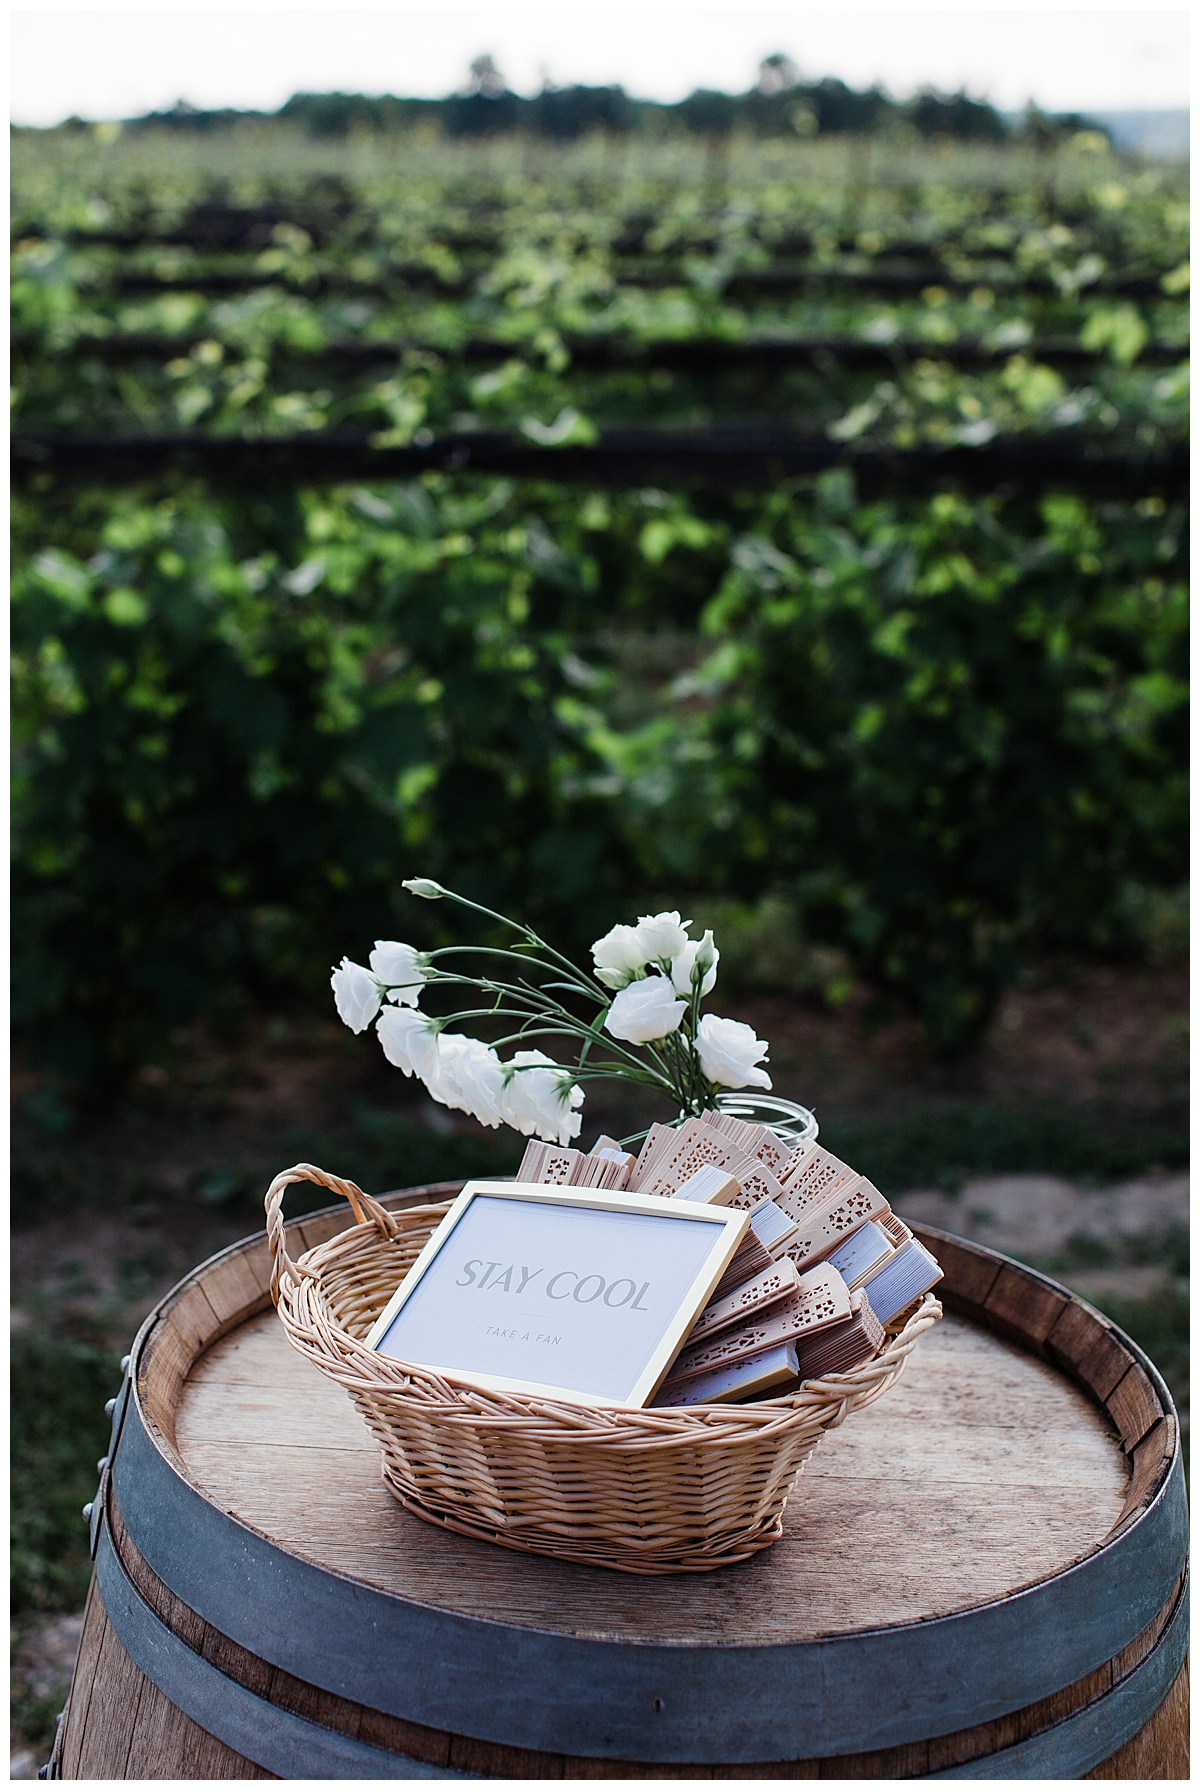 Stay Cool Fans for outdoor winery wedding| Adamo Estate Winery| Toronto photographer| 3photography